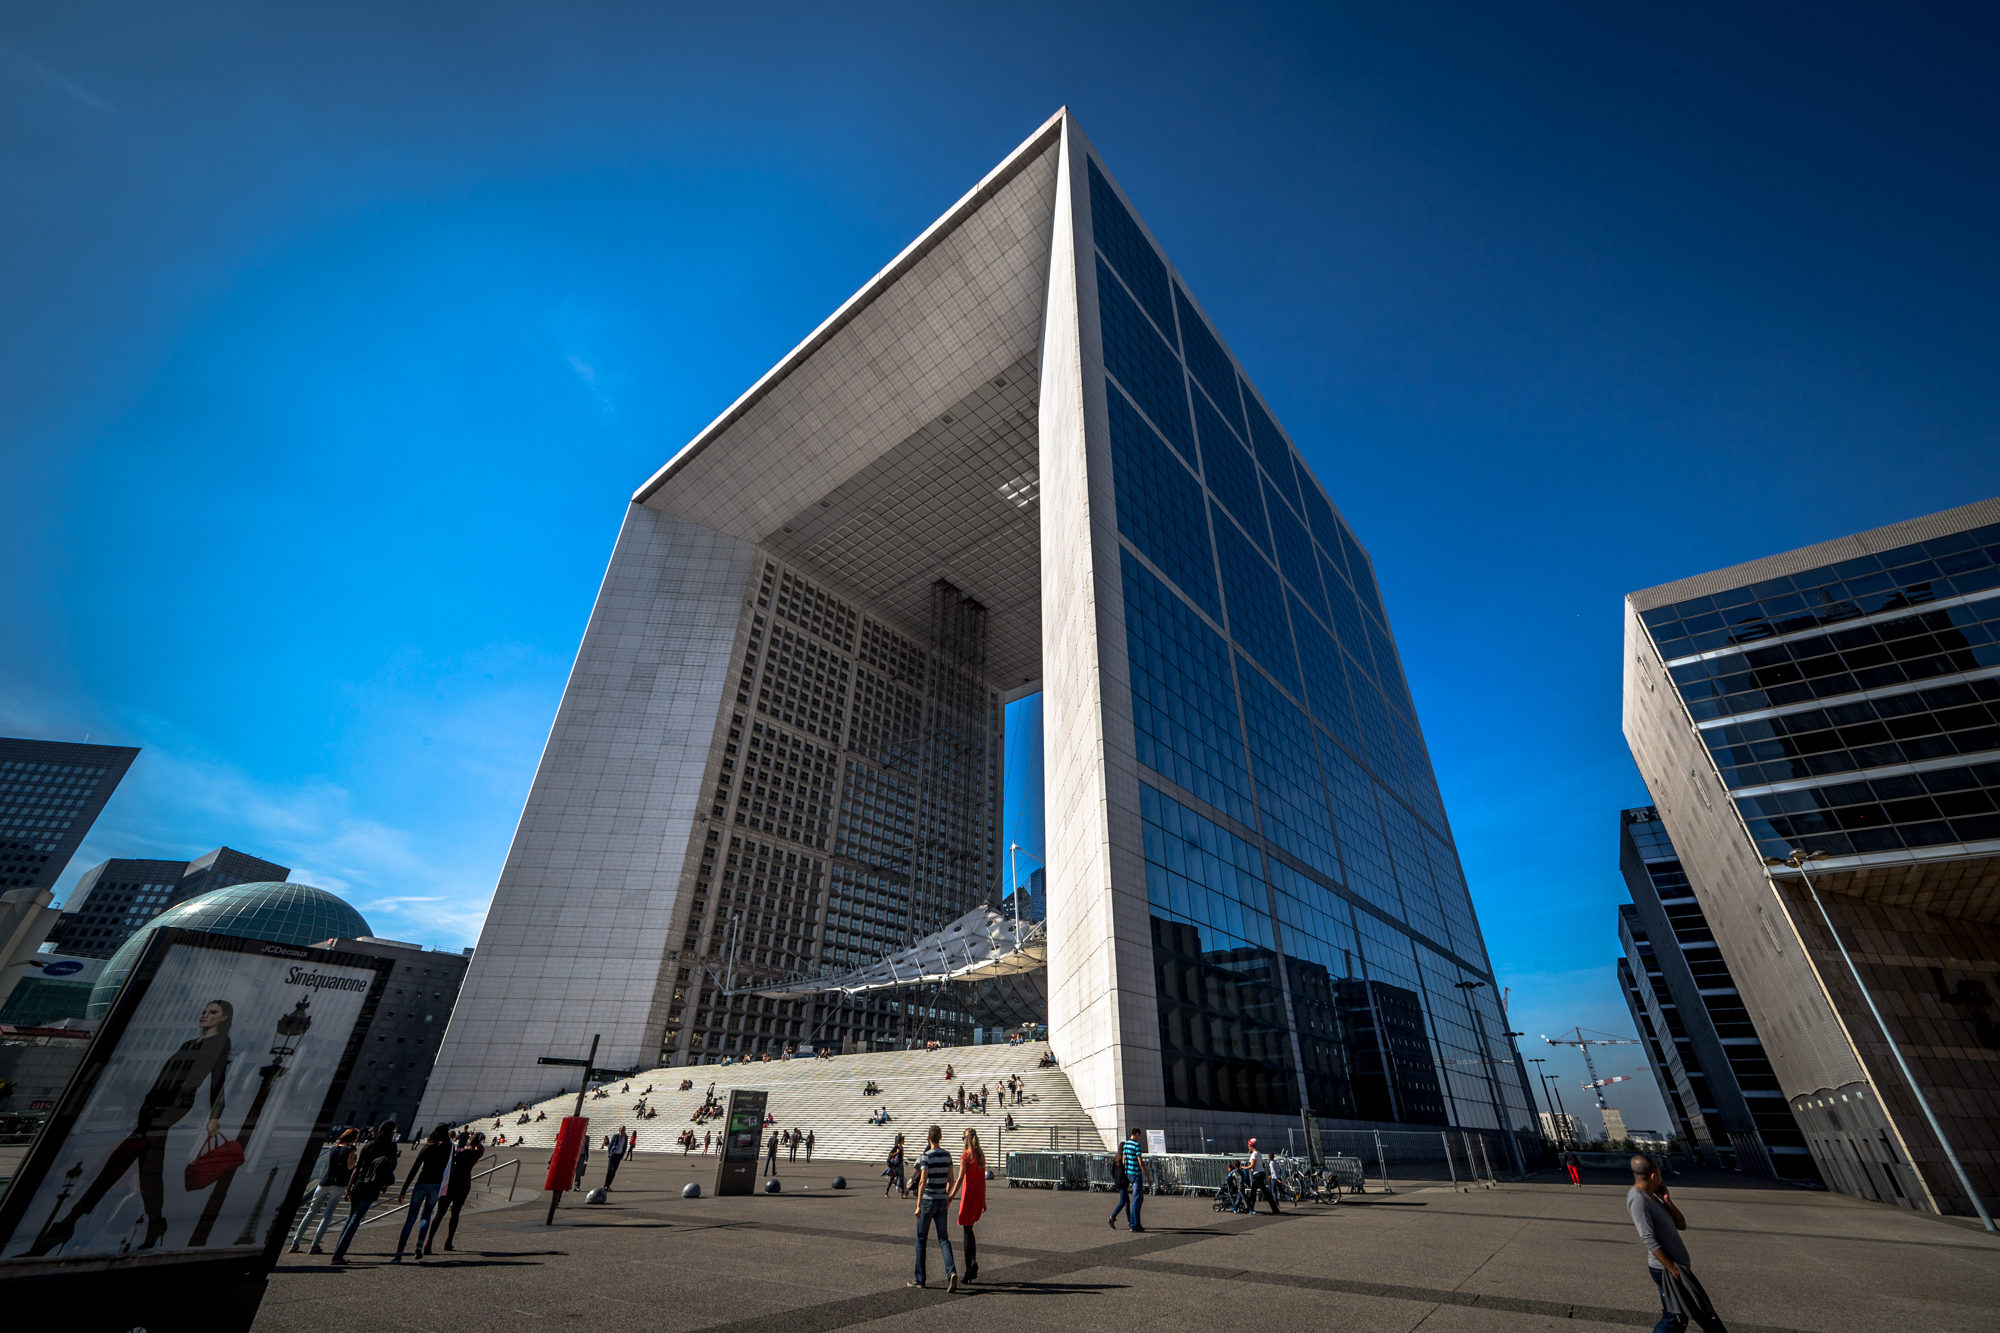 Best places to take pictures in Paris - La Grande Arche de la Défense, Paris by Darwin. Taken with a Canon 6D and Rokinon 14mm f/2.8L IS USM lens.